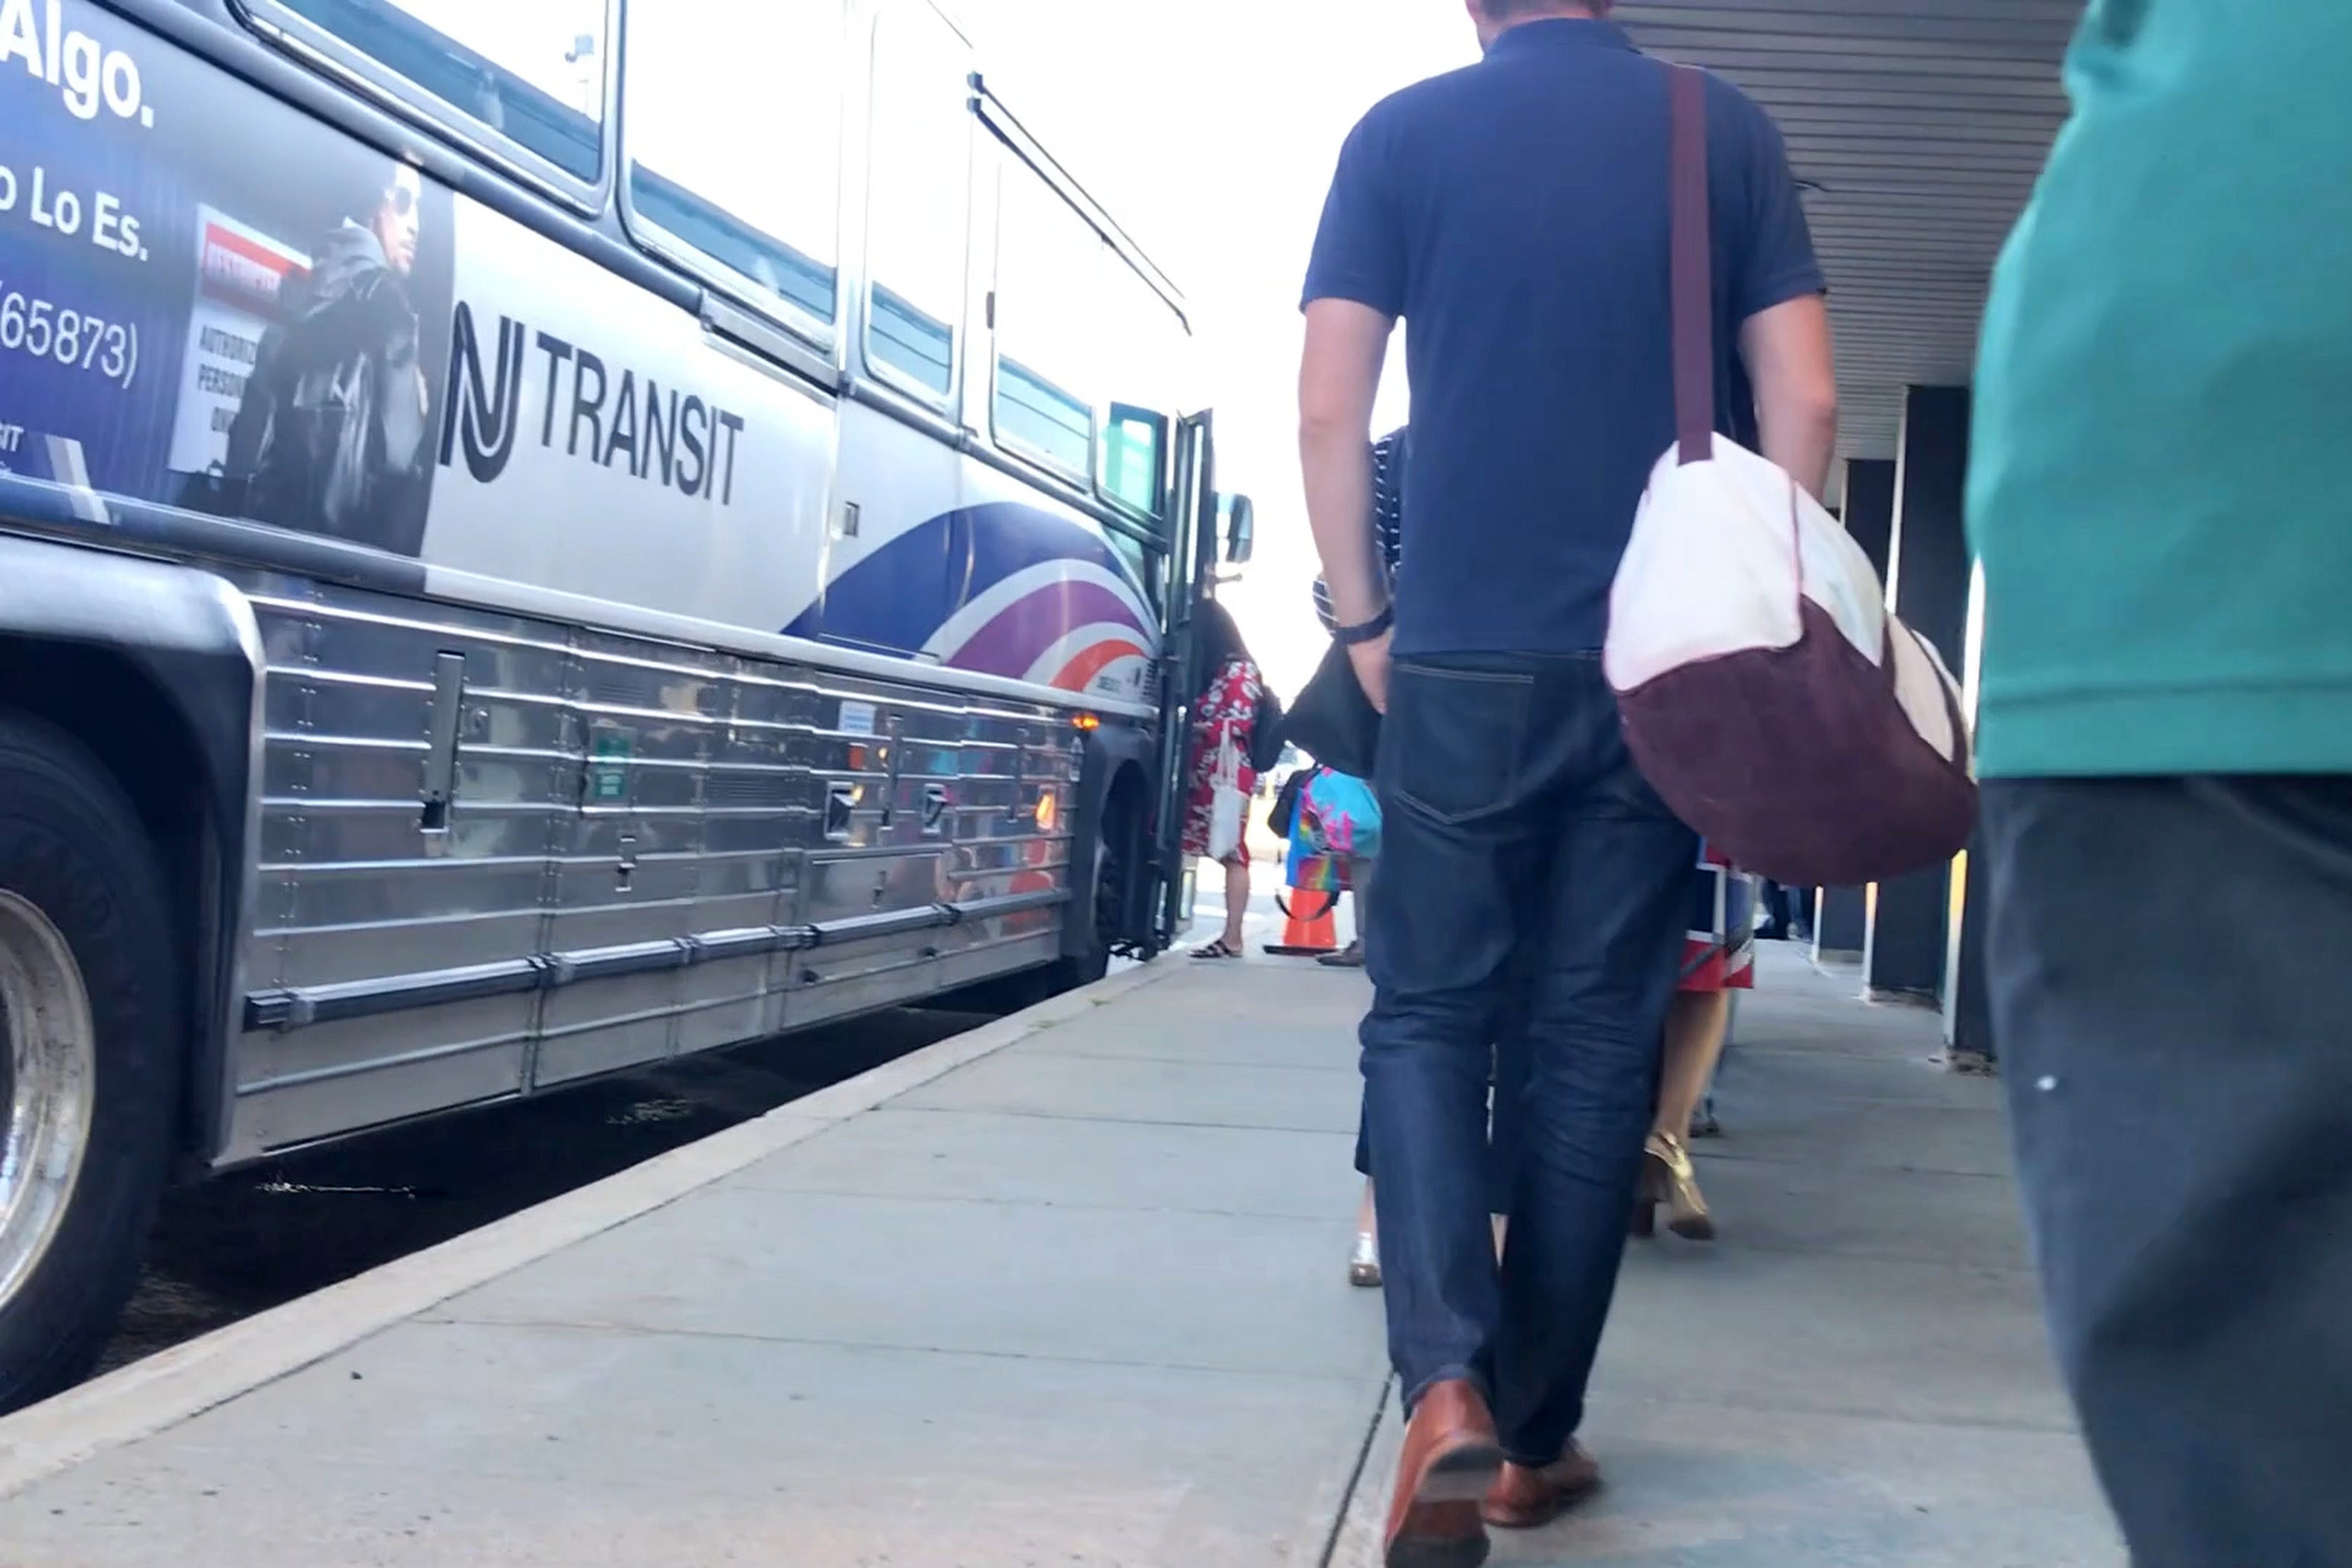 I rode NJ Transit for a week. Here's what I learned.